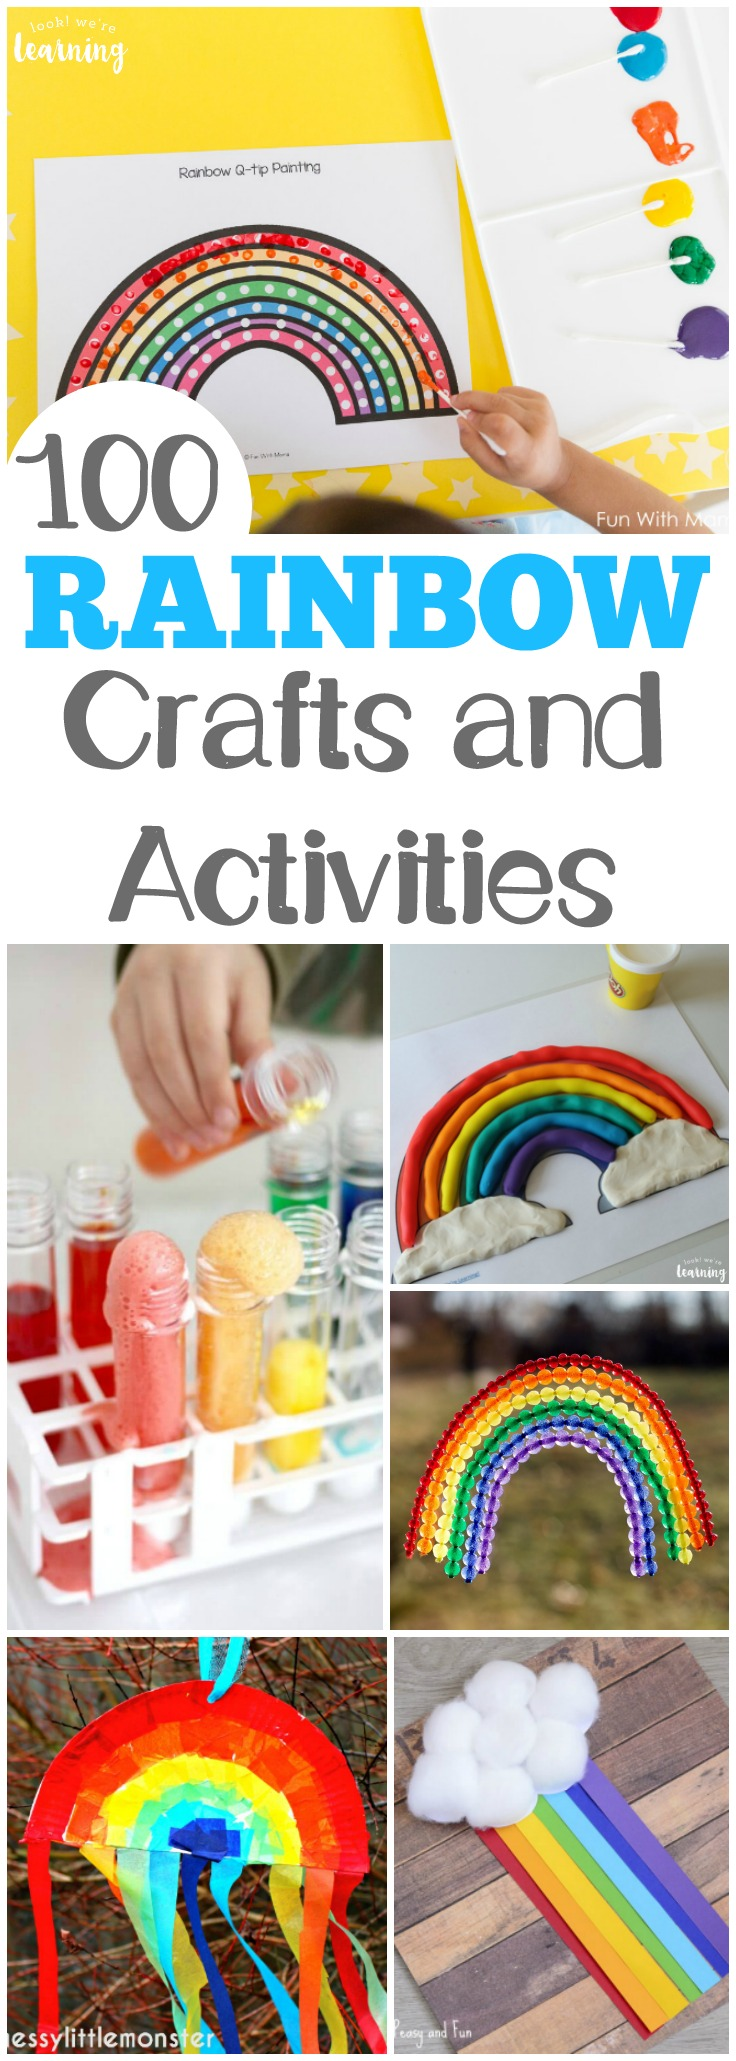 Looking for some awesome spring crafts? There are 100 rainbow activities for kids here to share this spring!